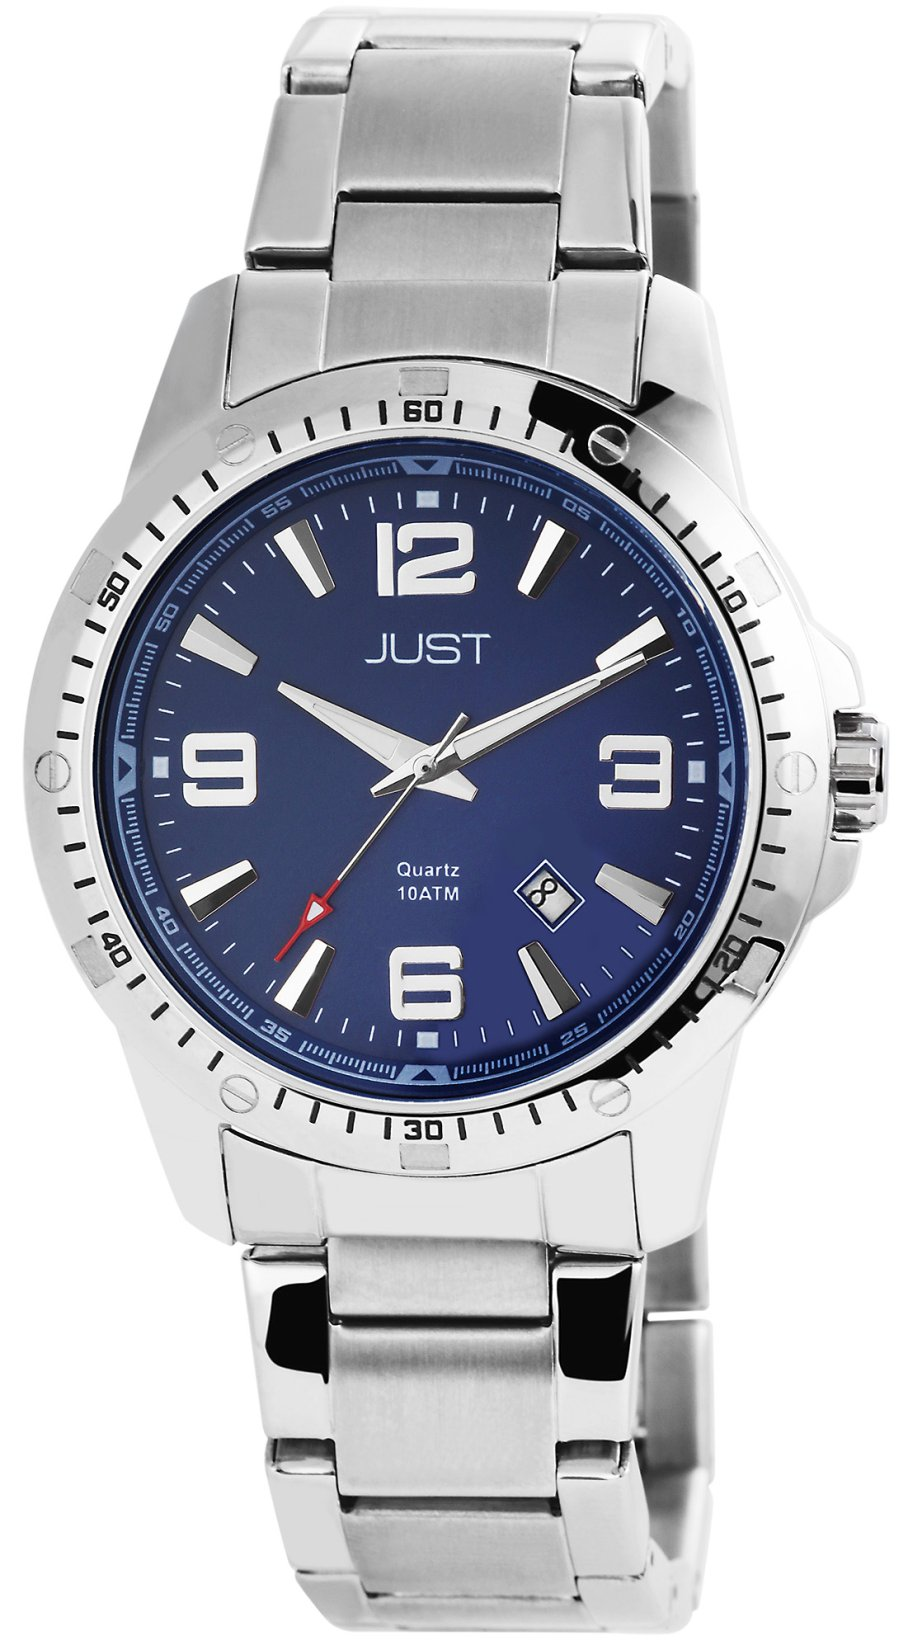 JUST men's watch 20134-002